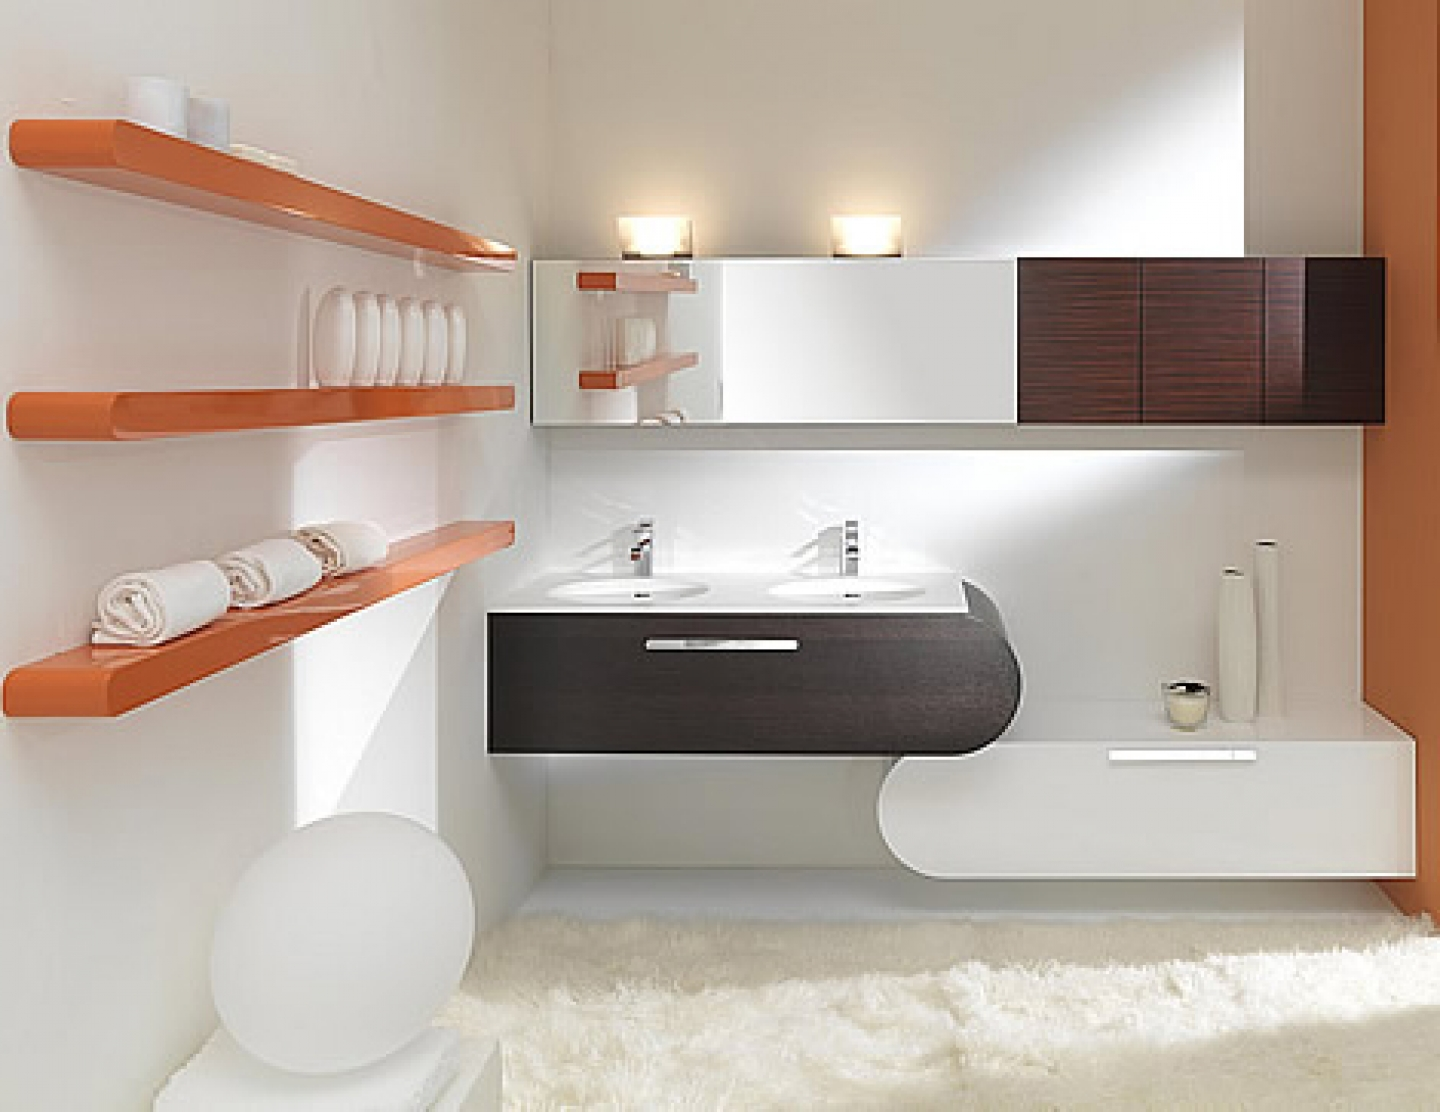 Awesome Theluxurybathroomvanitiesbathroommodernwithbathroomcabinet